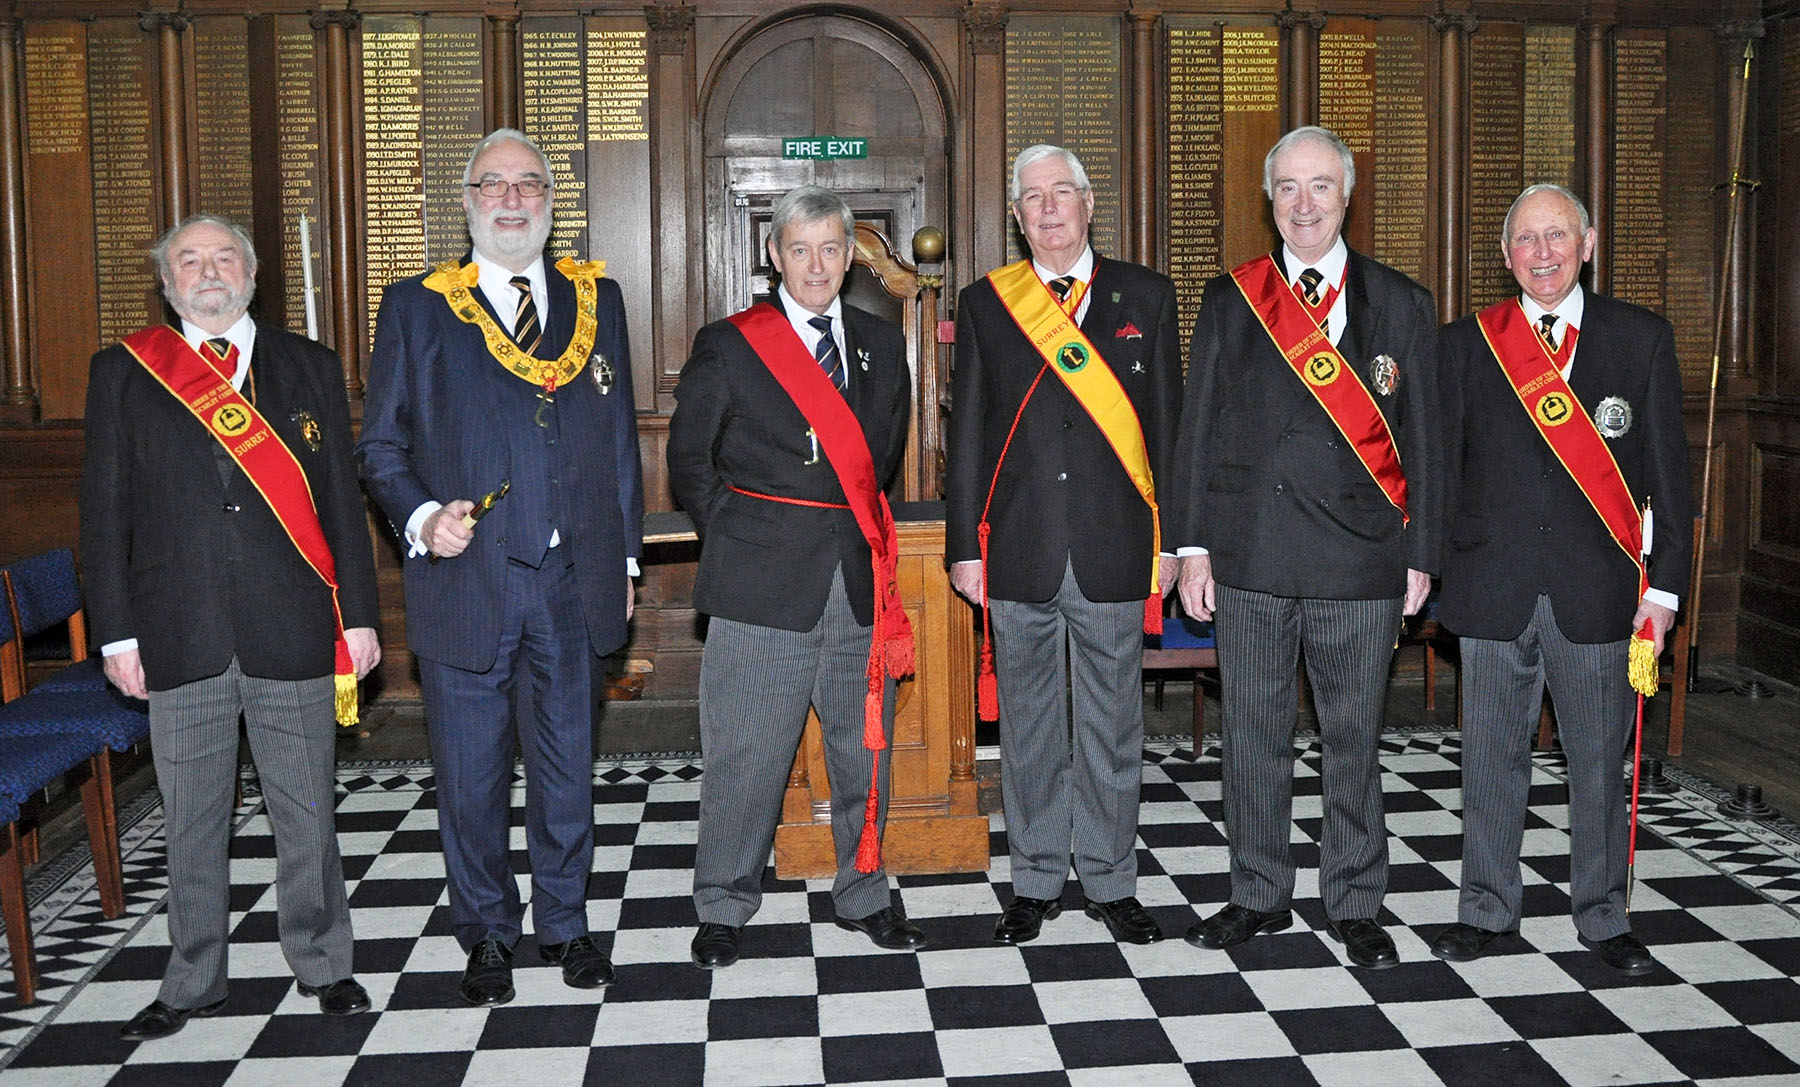 The Assistant Provincial Grand Master joins the Order of the Scarlet Cord